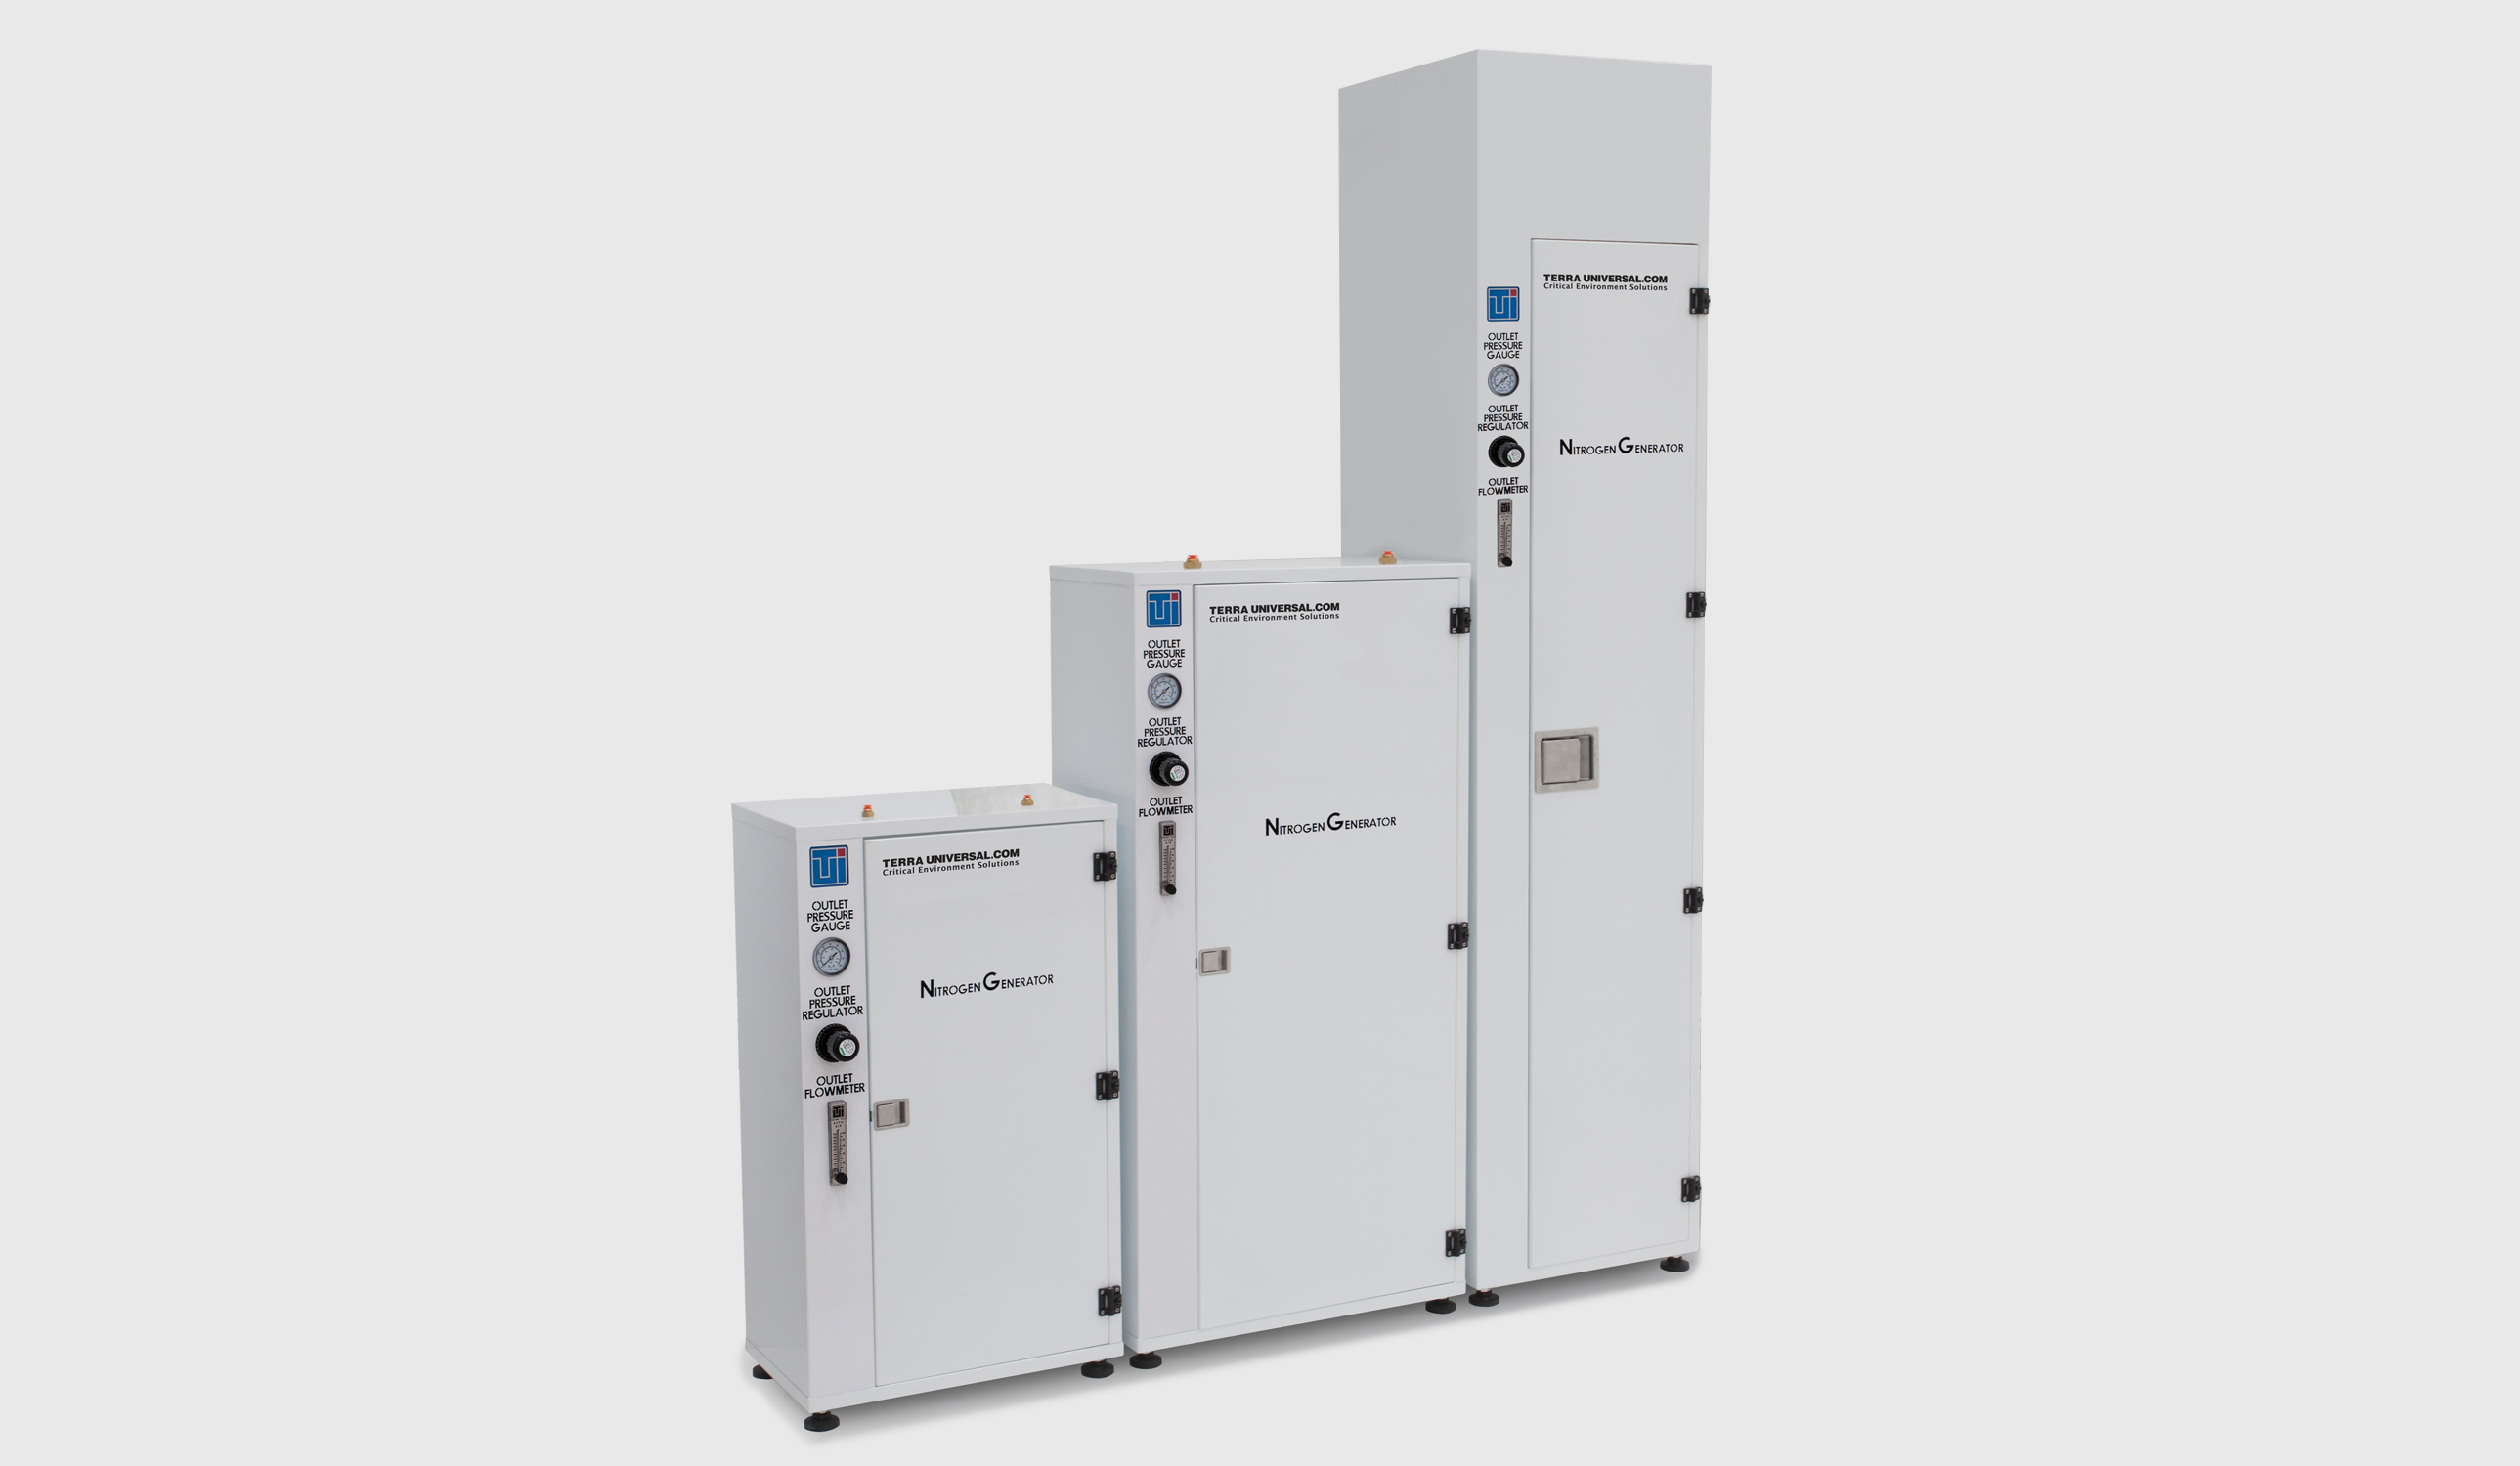 What are the Benefits of a Nitrogen Generator?